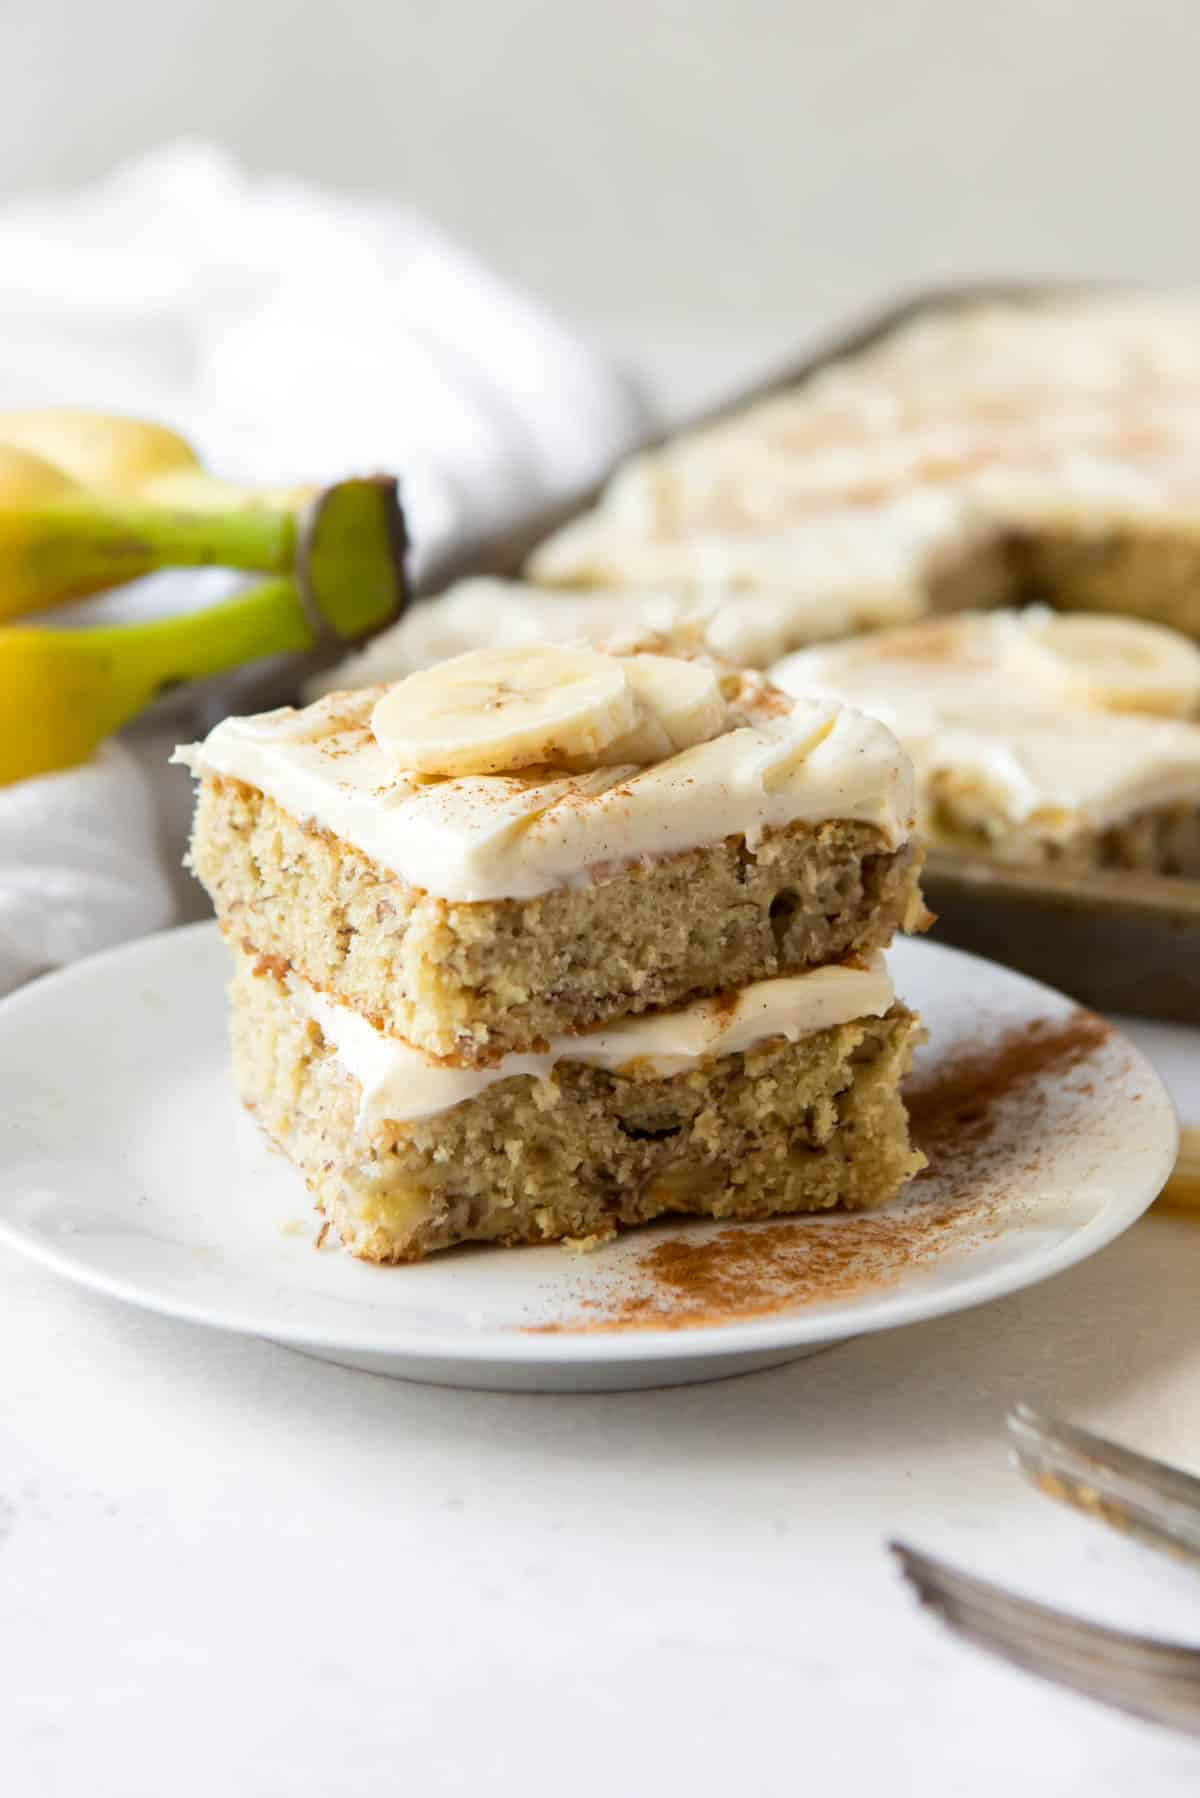 Two banana bars stacked on top of each other on a white plate